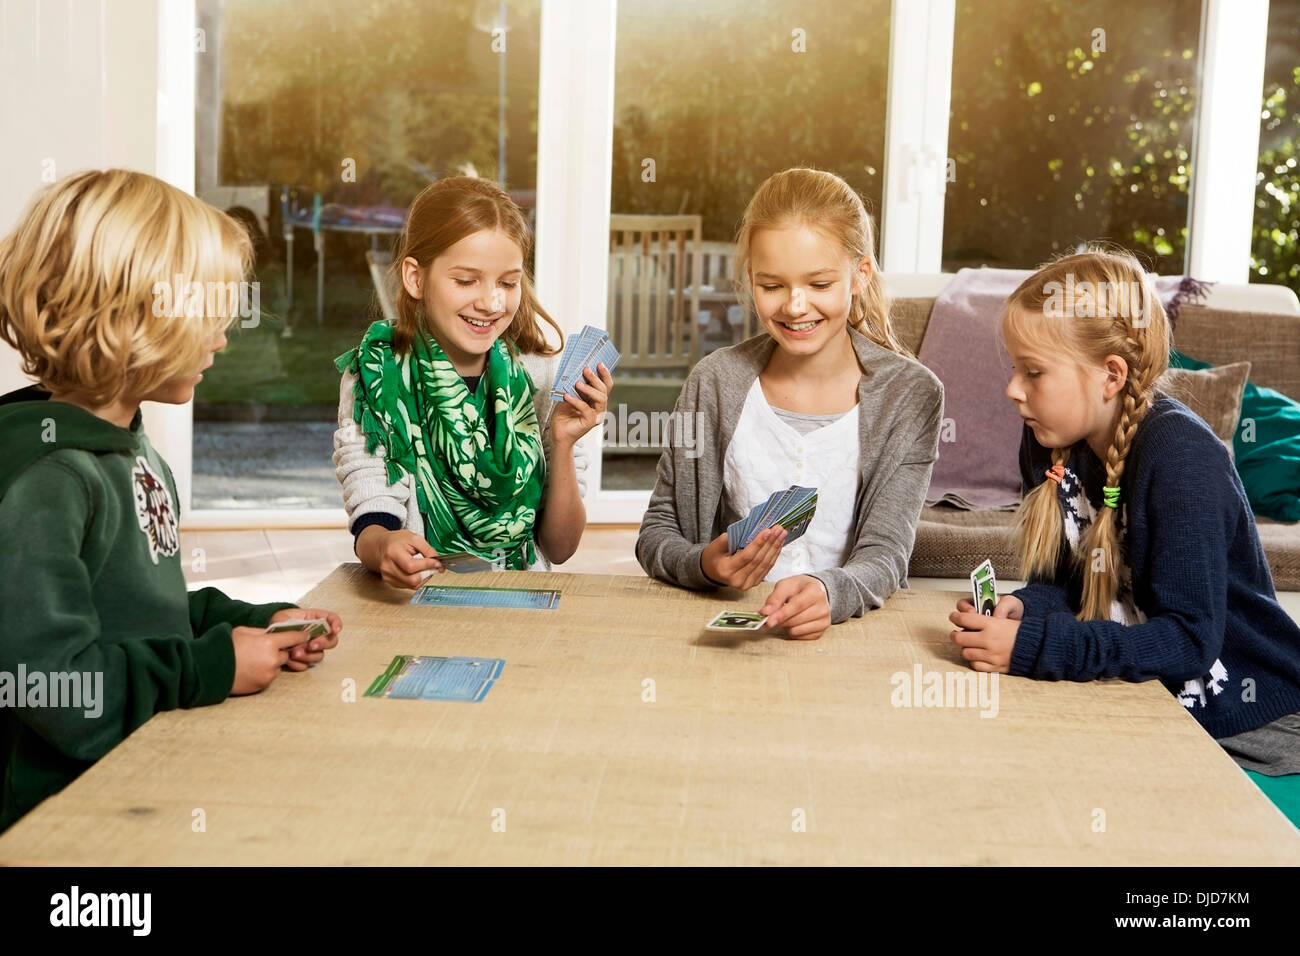 Four children playing card game in living room stock photo for Living room channel 10 competition